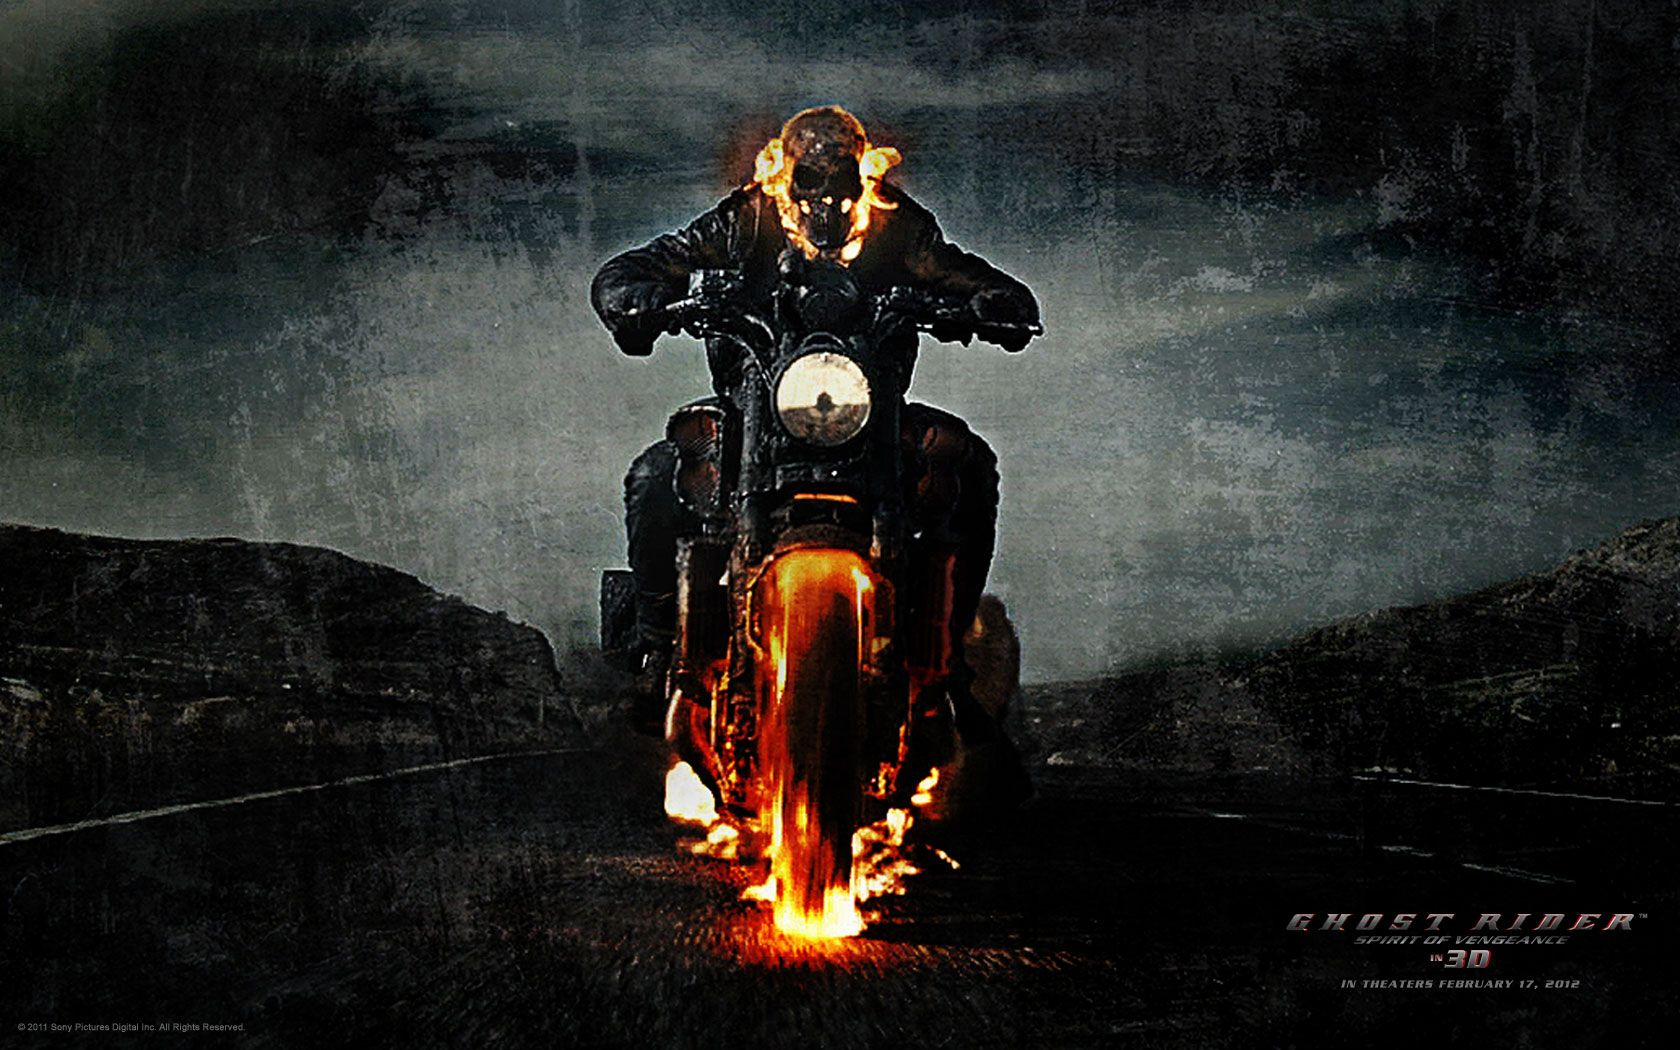 Hope This One S Better Ghost Rider Wallpaper Spirit Of Vengeance Ghost Rider Ghost rider spirit of vengeance game